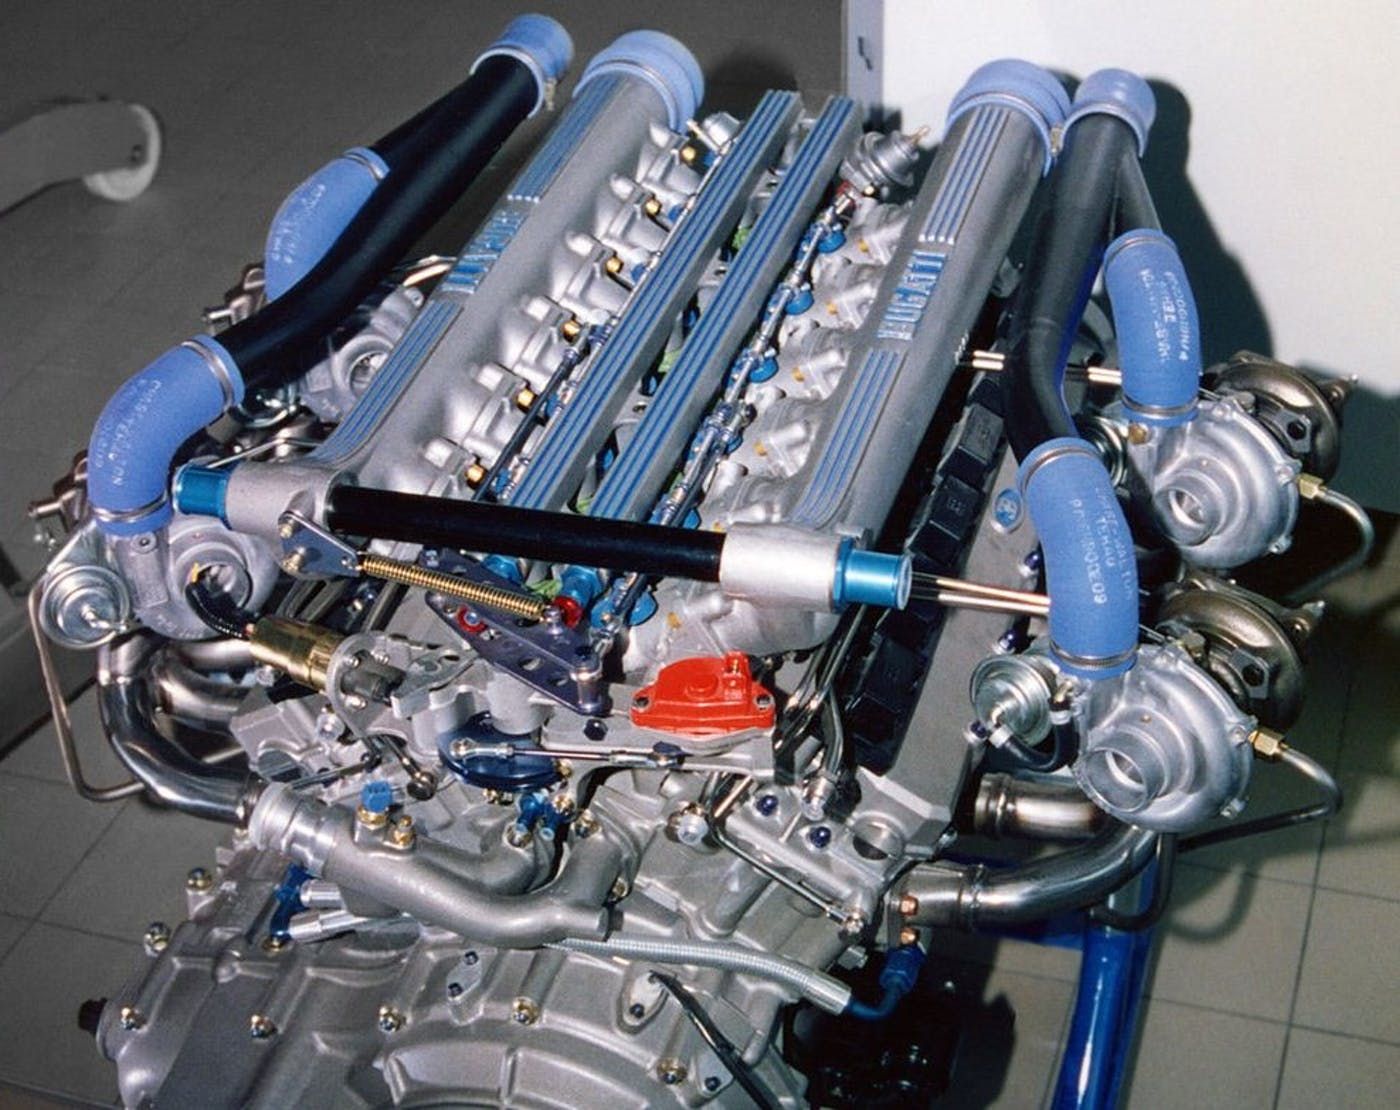 Production Vehicles With A Quad Turbo Configuration Car Guys Paradise Bugatti Veyron W16 Engine Diagram The Was First Which Entirely Designed Developed And Manufactured Under Ownership Of Volkswagen Group